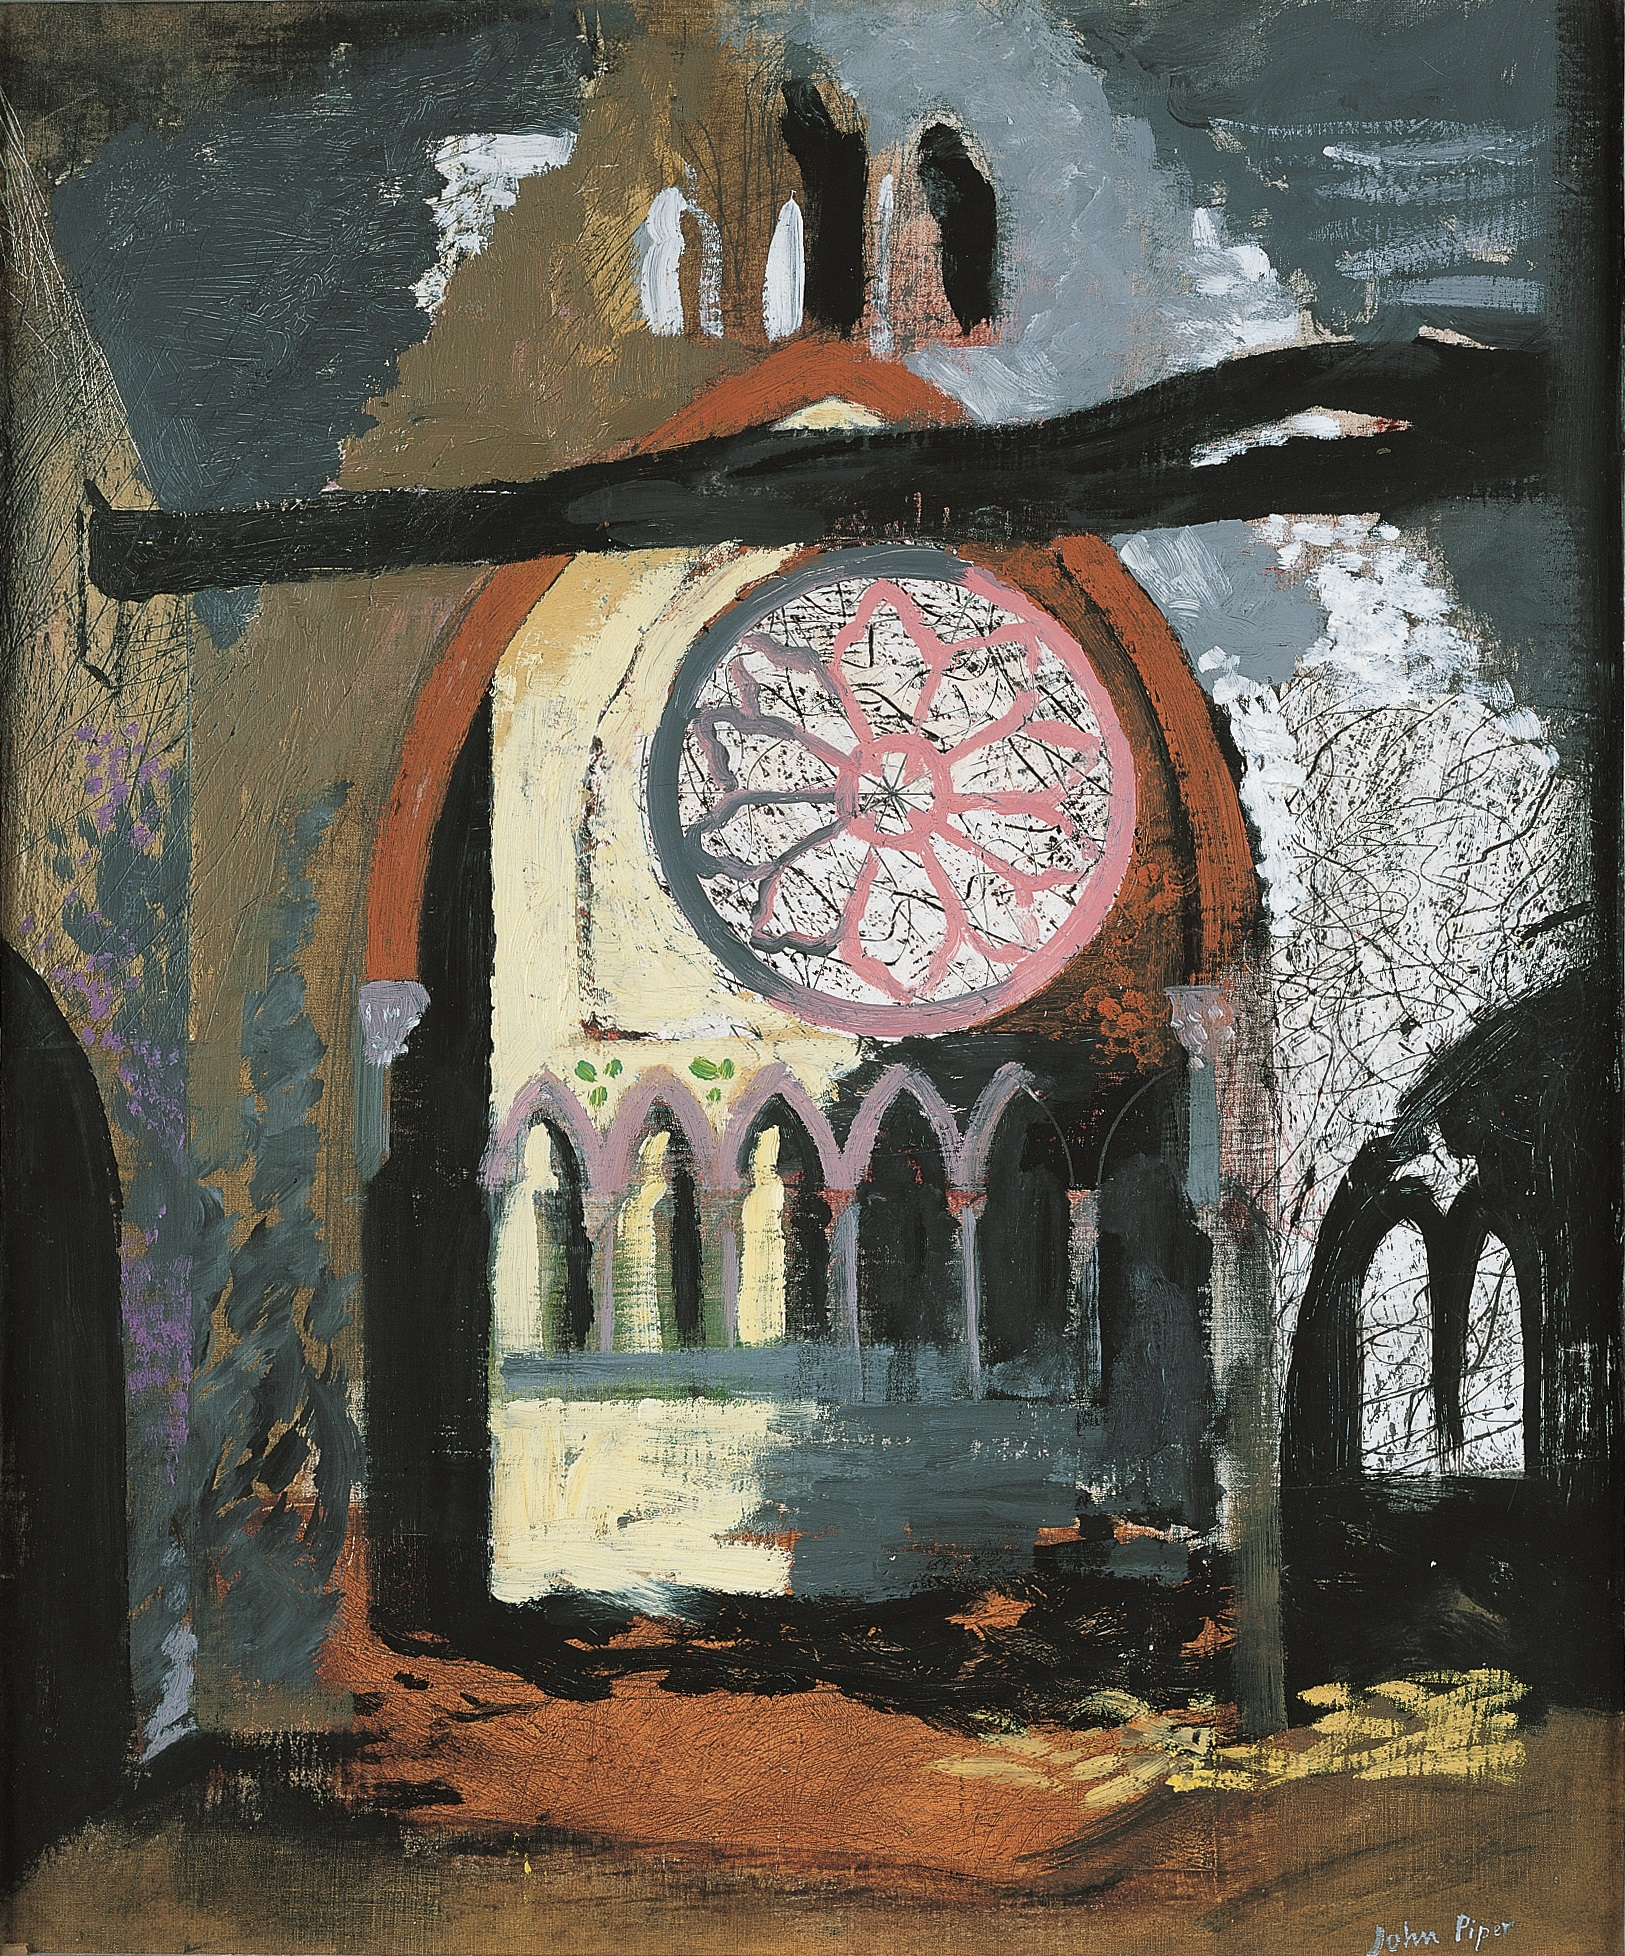 Painting showing the interior of a bomb blasted church with an intact stained glass window